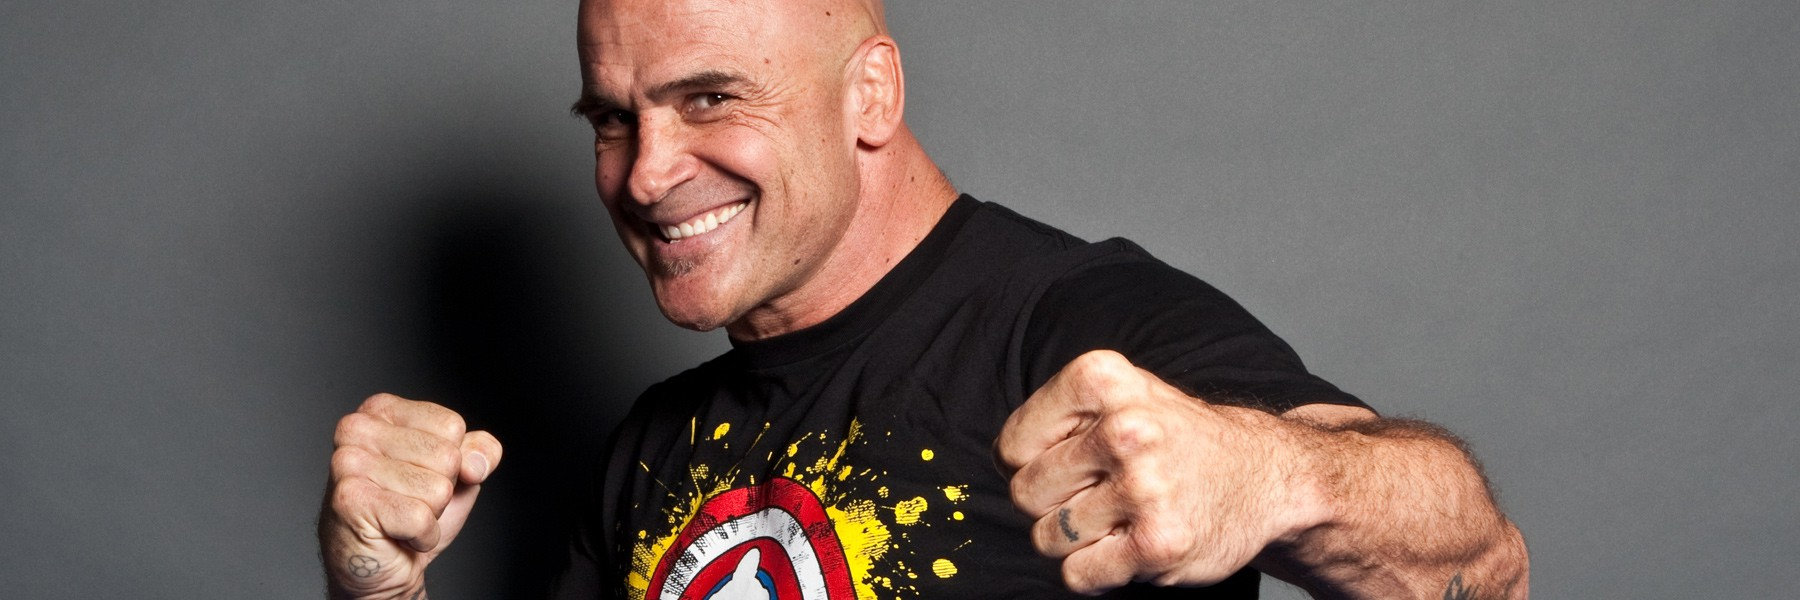 Hardcore Training w/ Bas Rutten, El Guapo Himself